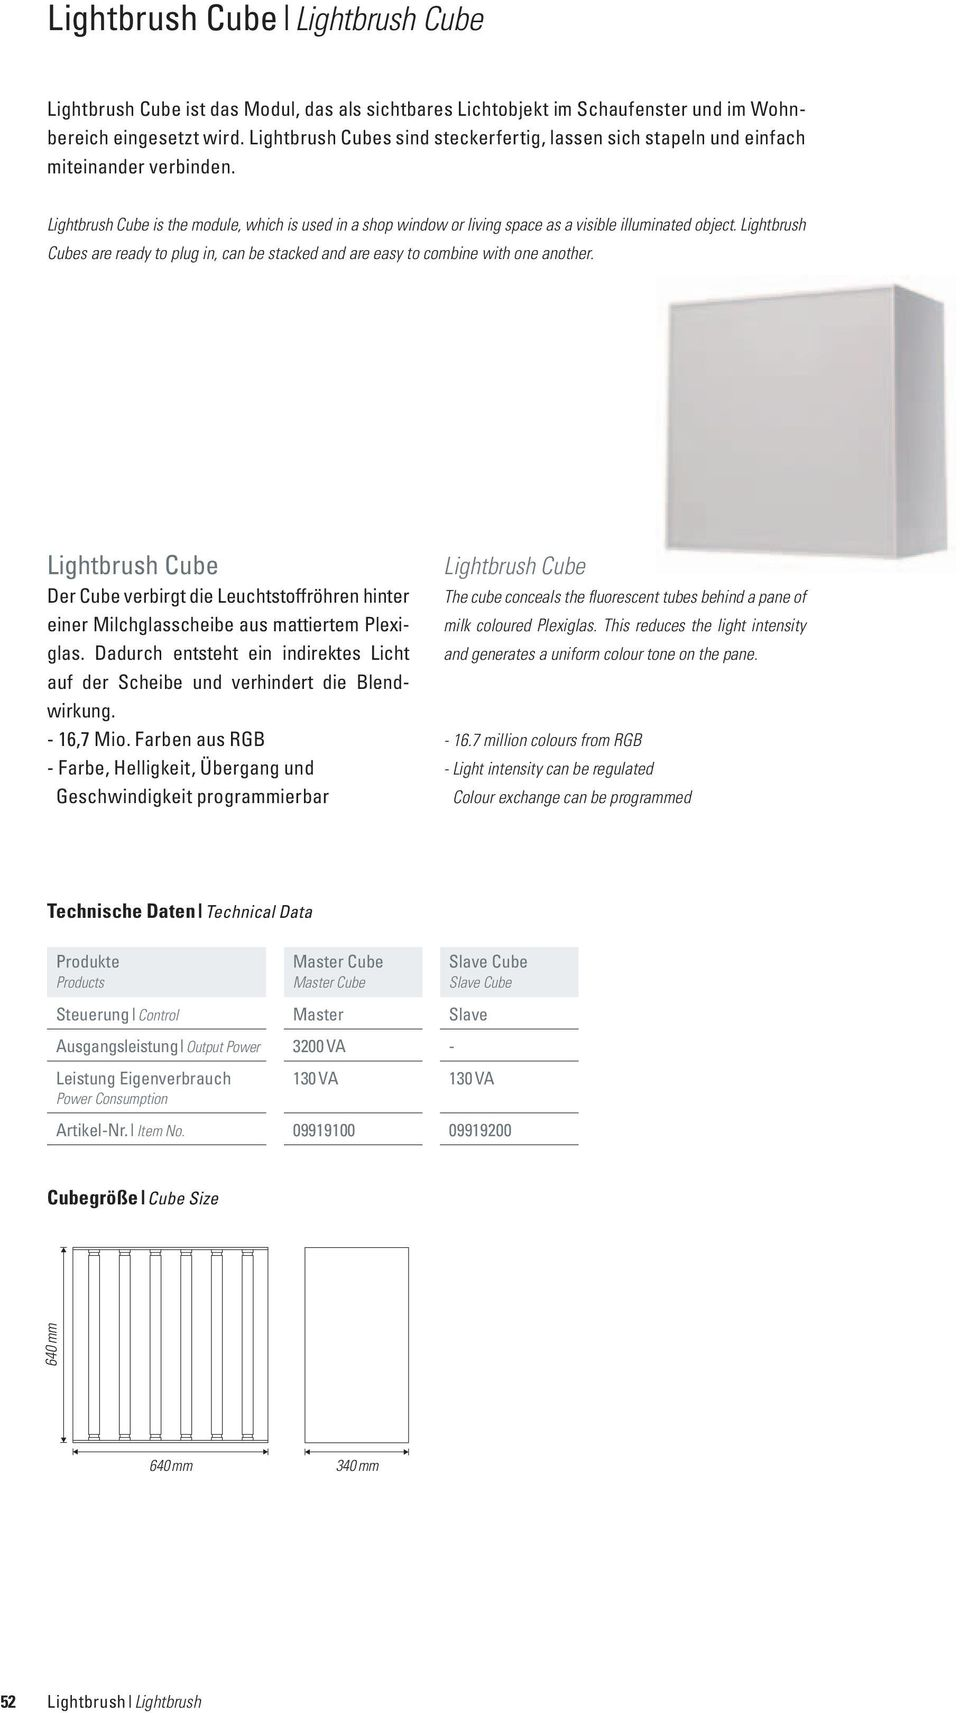 Lightbrush Cube is the module, which is used in a shop window or living space as a visible illuminated object.